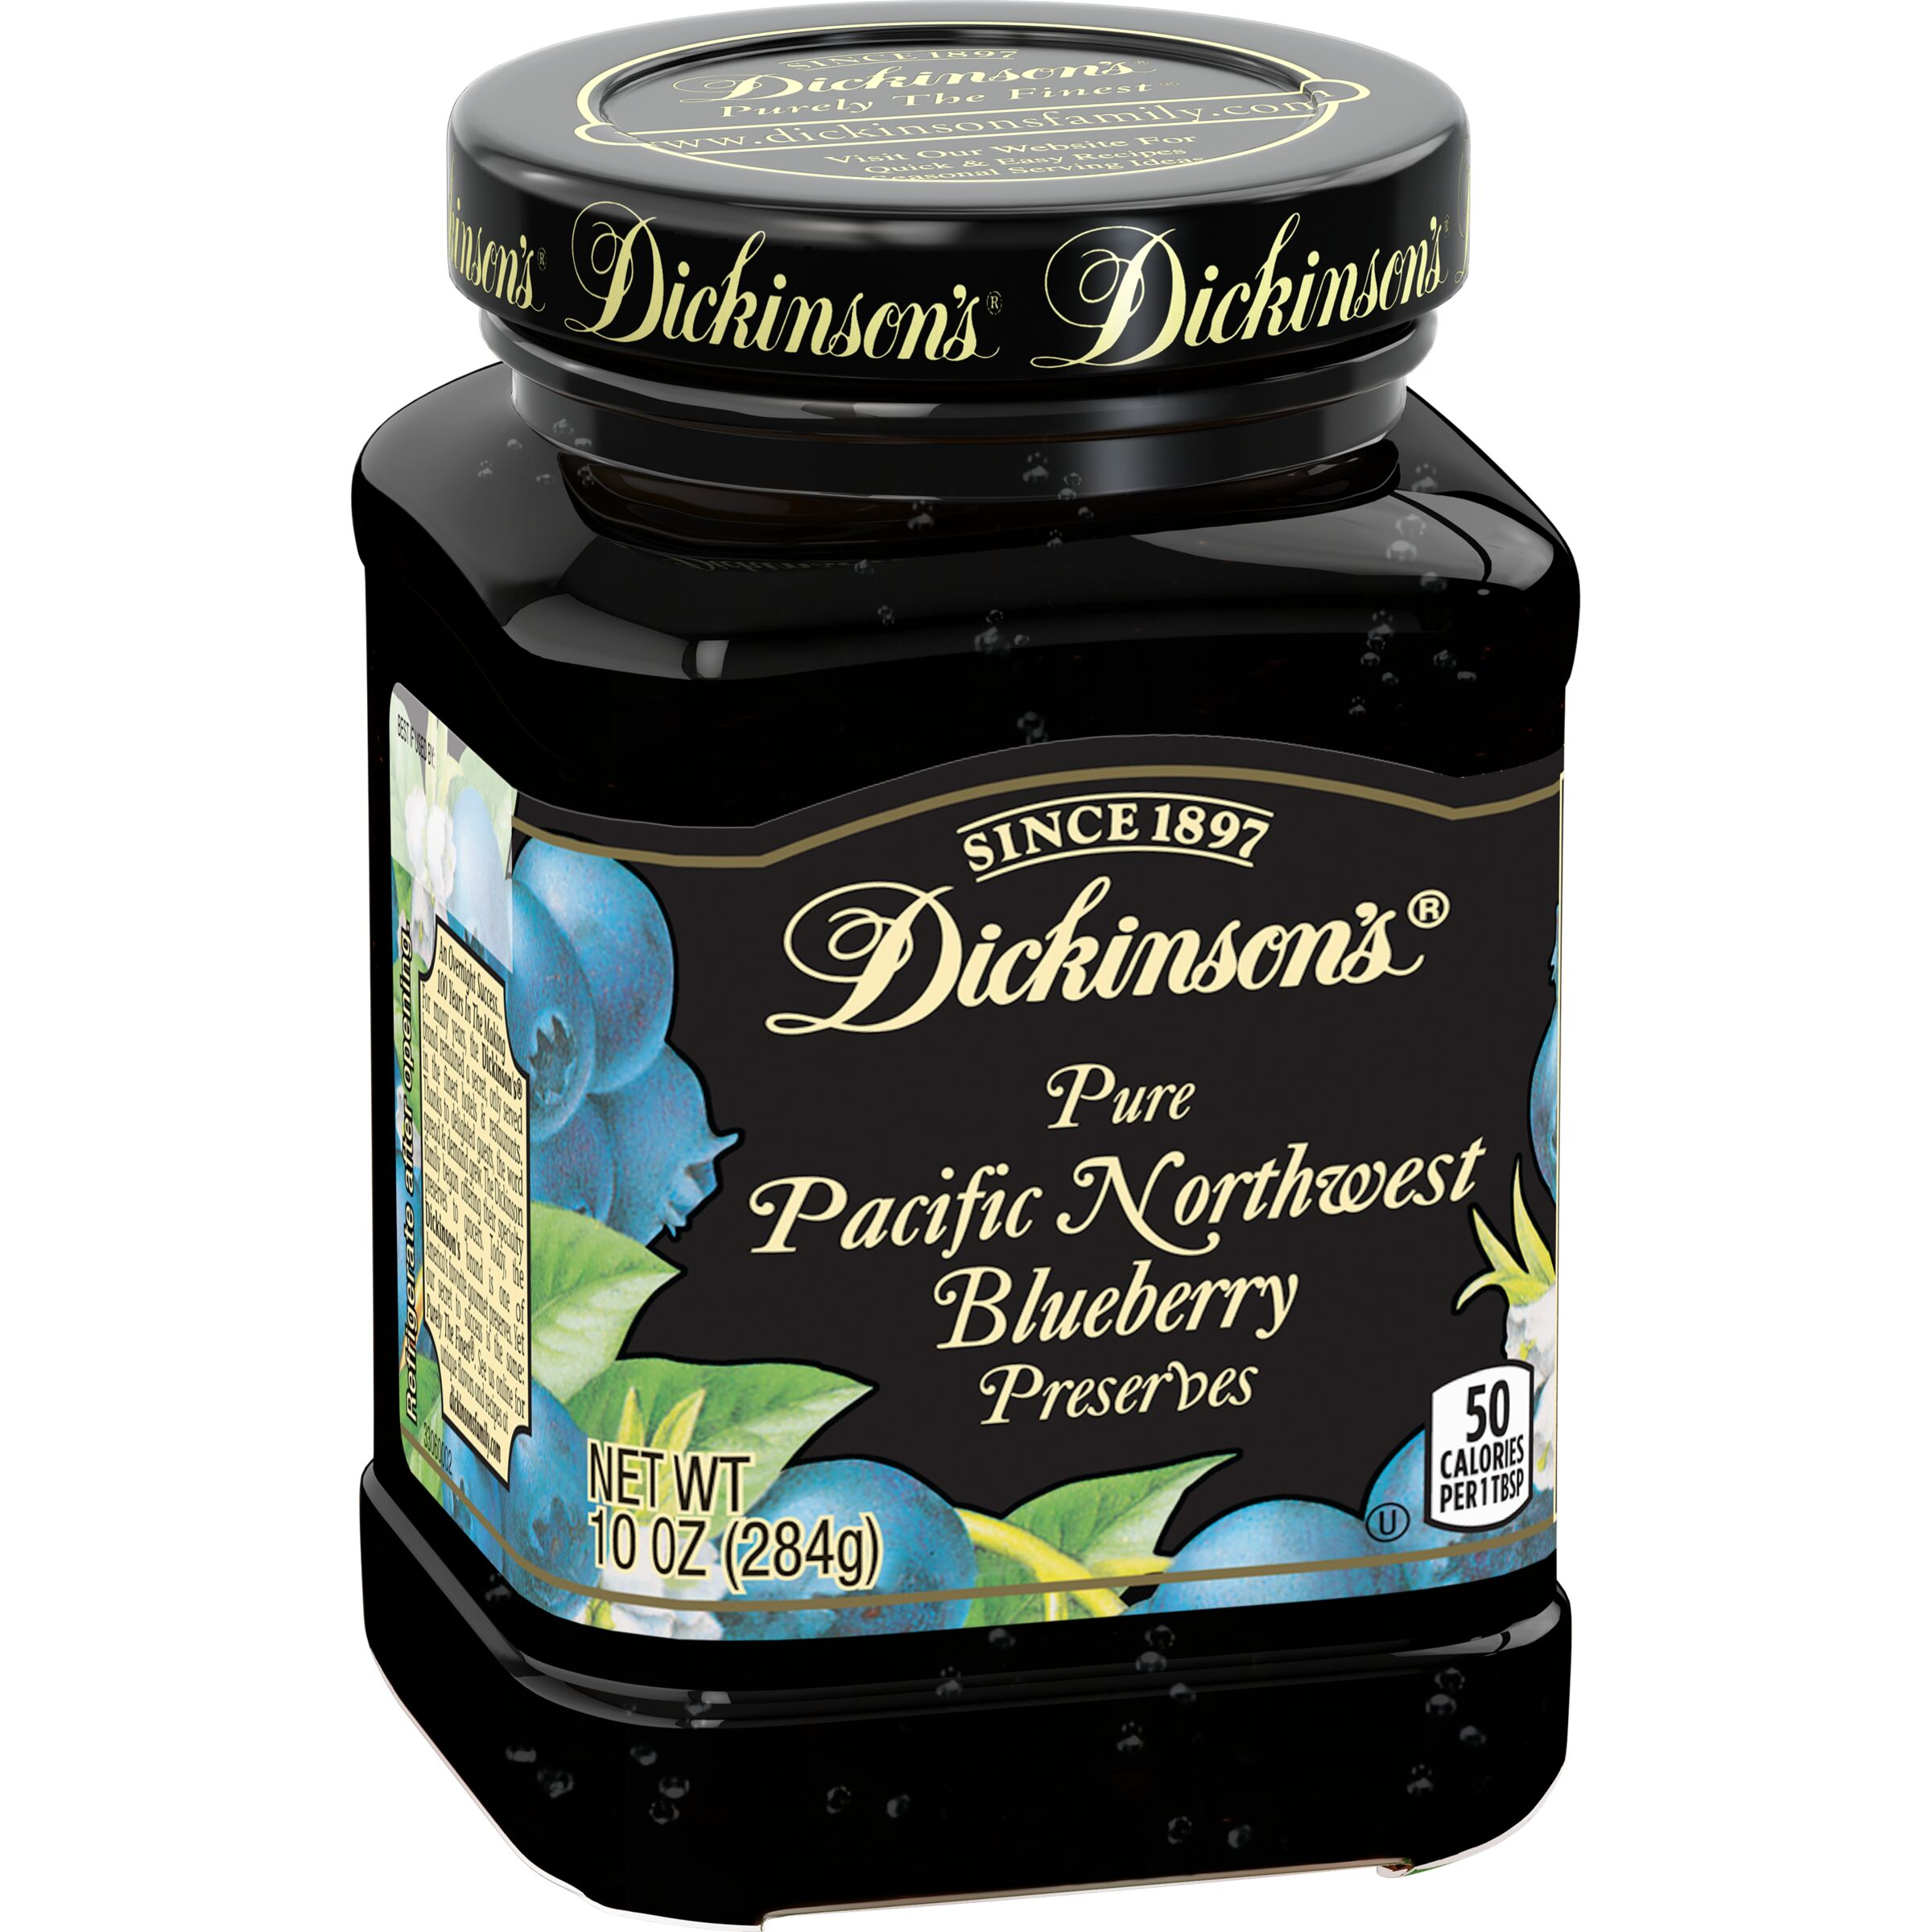 Dickinson's<sup>®</sup>  Pacific Northwest Blueberry Preserves